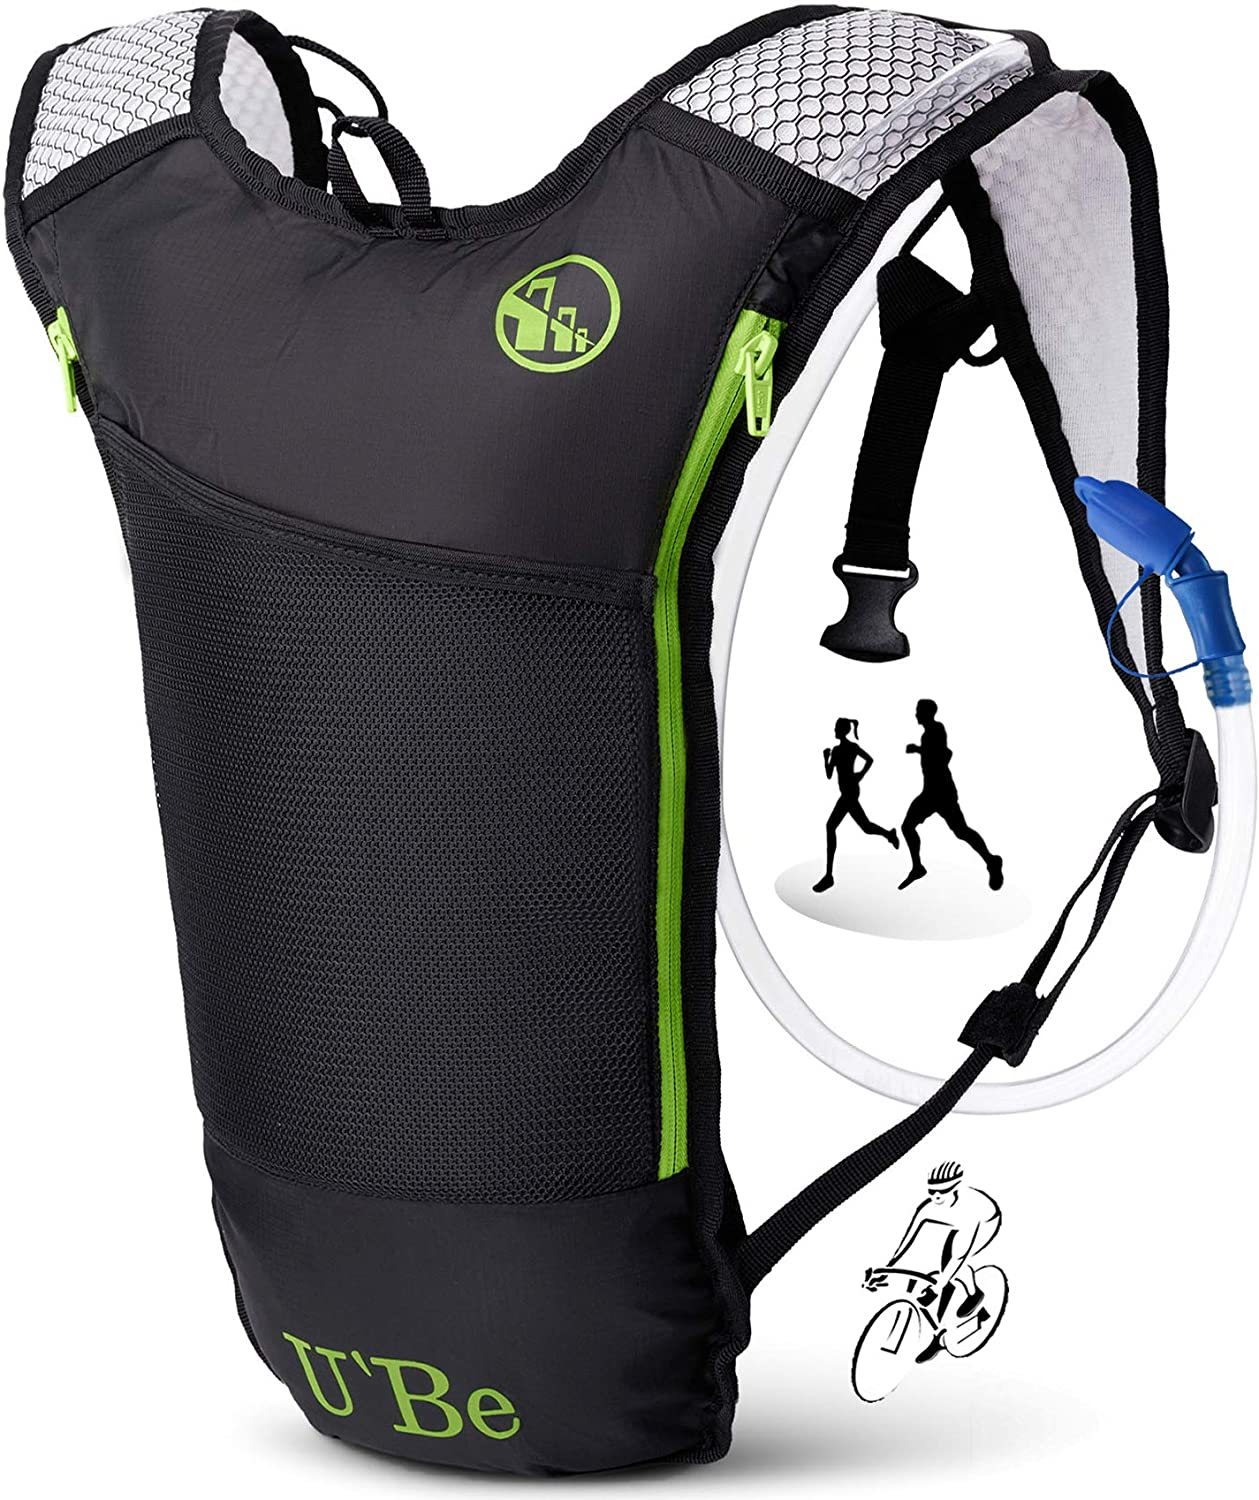 Amazon.com : U`Be Hydration Backpack Pack with 2l Water Bladder - Small  Camelback for Kids Men & Women - Running Hiking Cycling : Sports & Outdoors